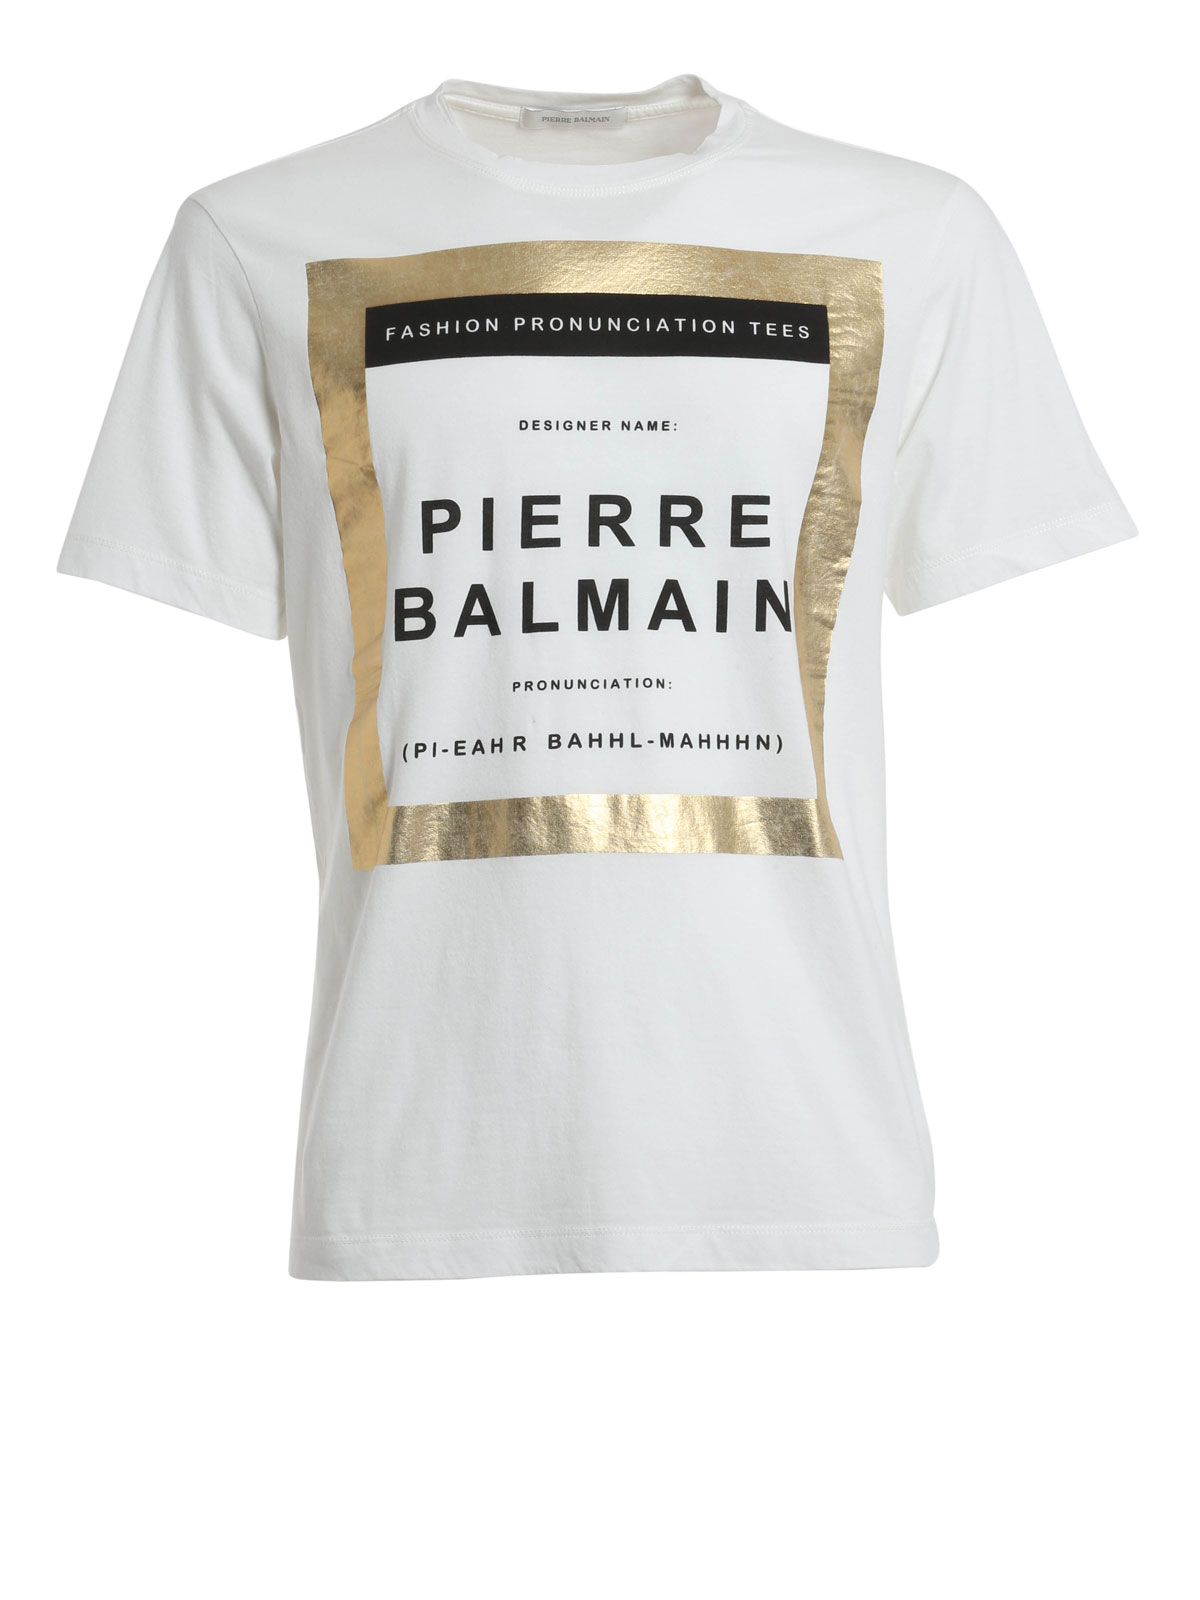 crew neck balmain t shirt by pierre balmain t shirts ikrix. Black Bedroom Furniture Sets. Home Design Ideas